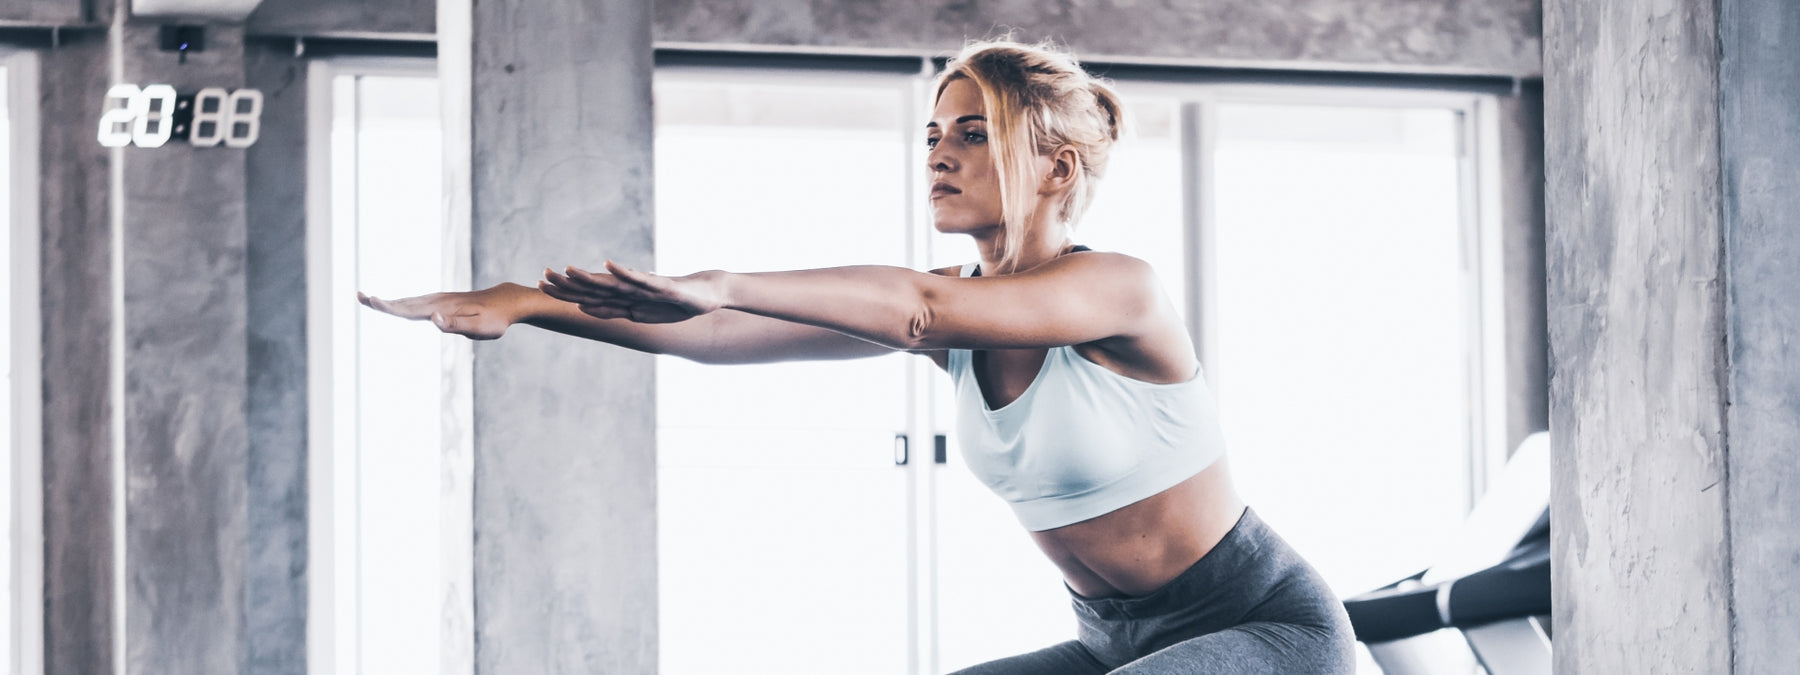 30-Minute HIIT Workout Routine You Can Do at Home